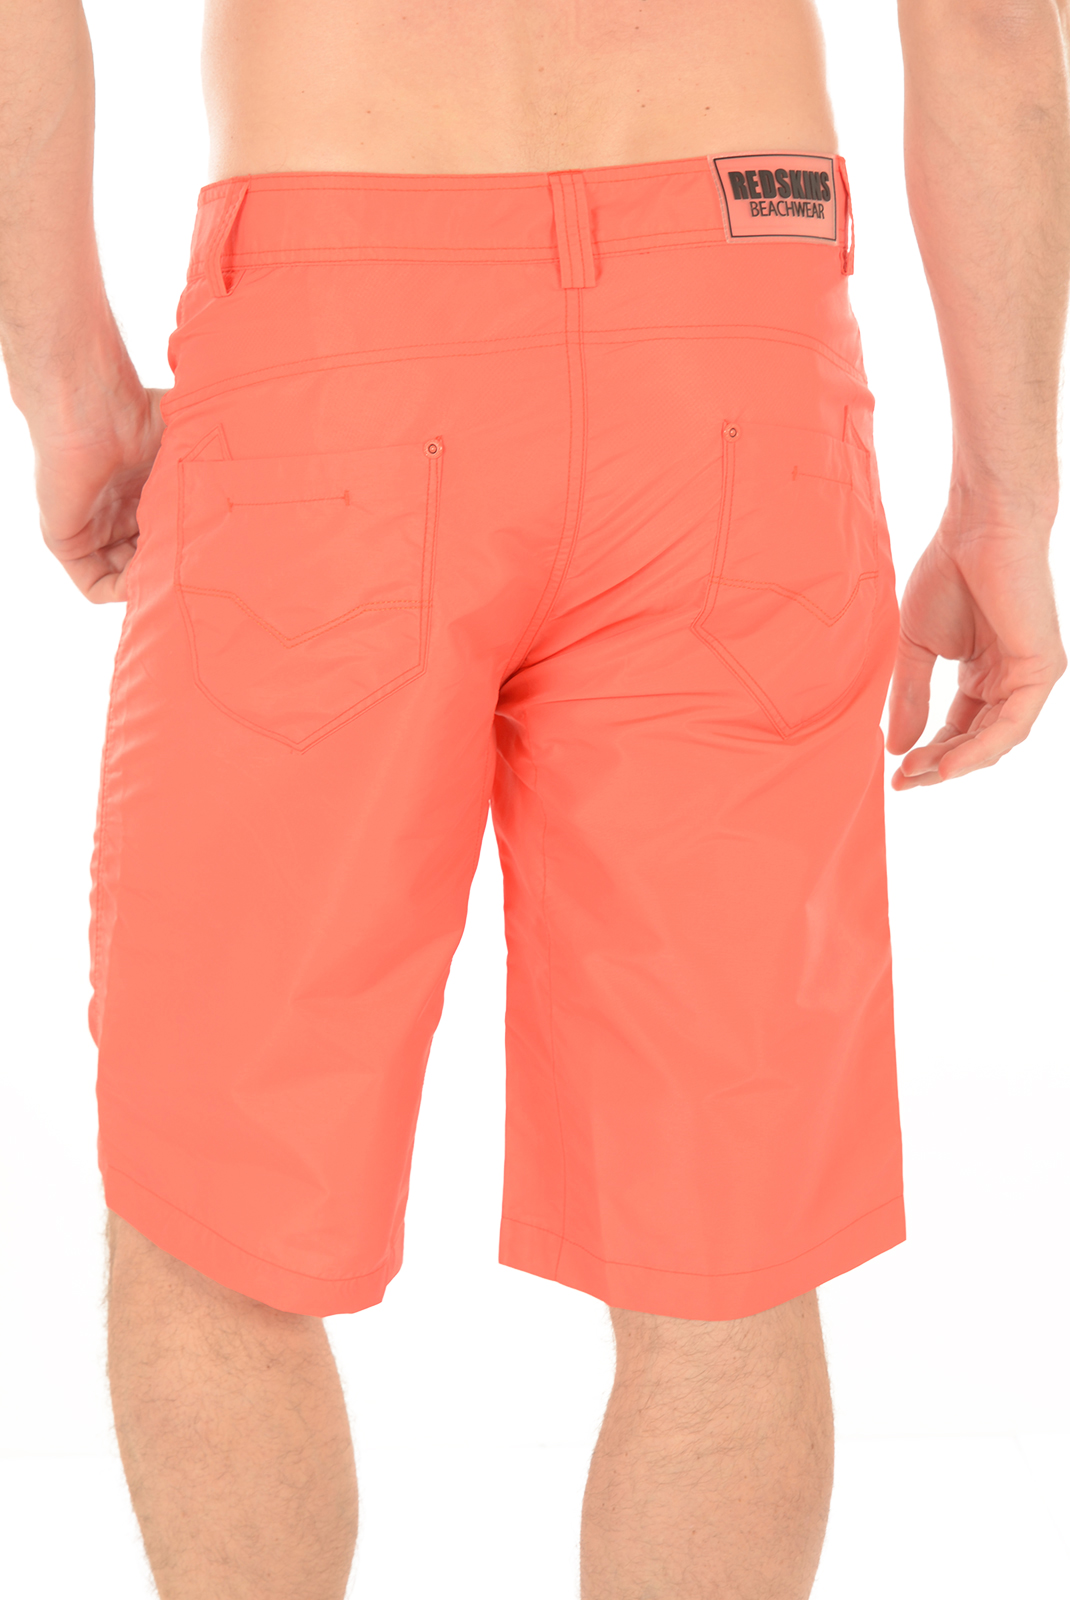 HOMME  Redskins RED08 CORAIL